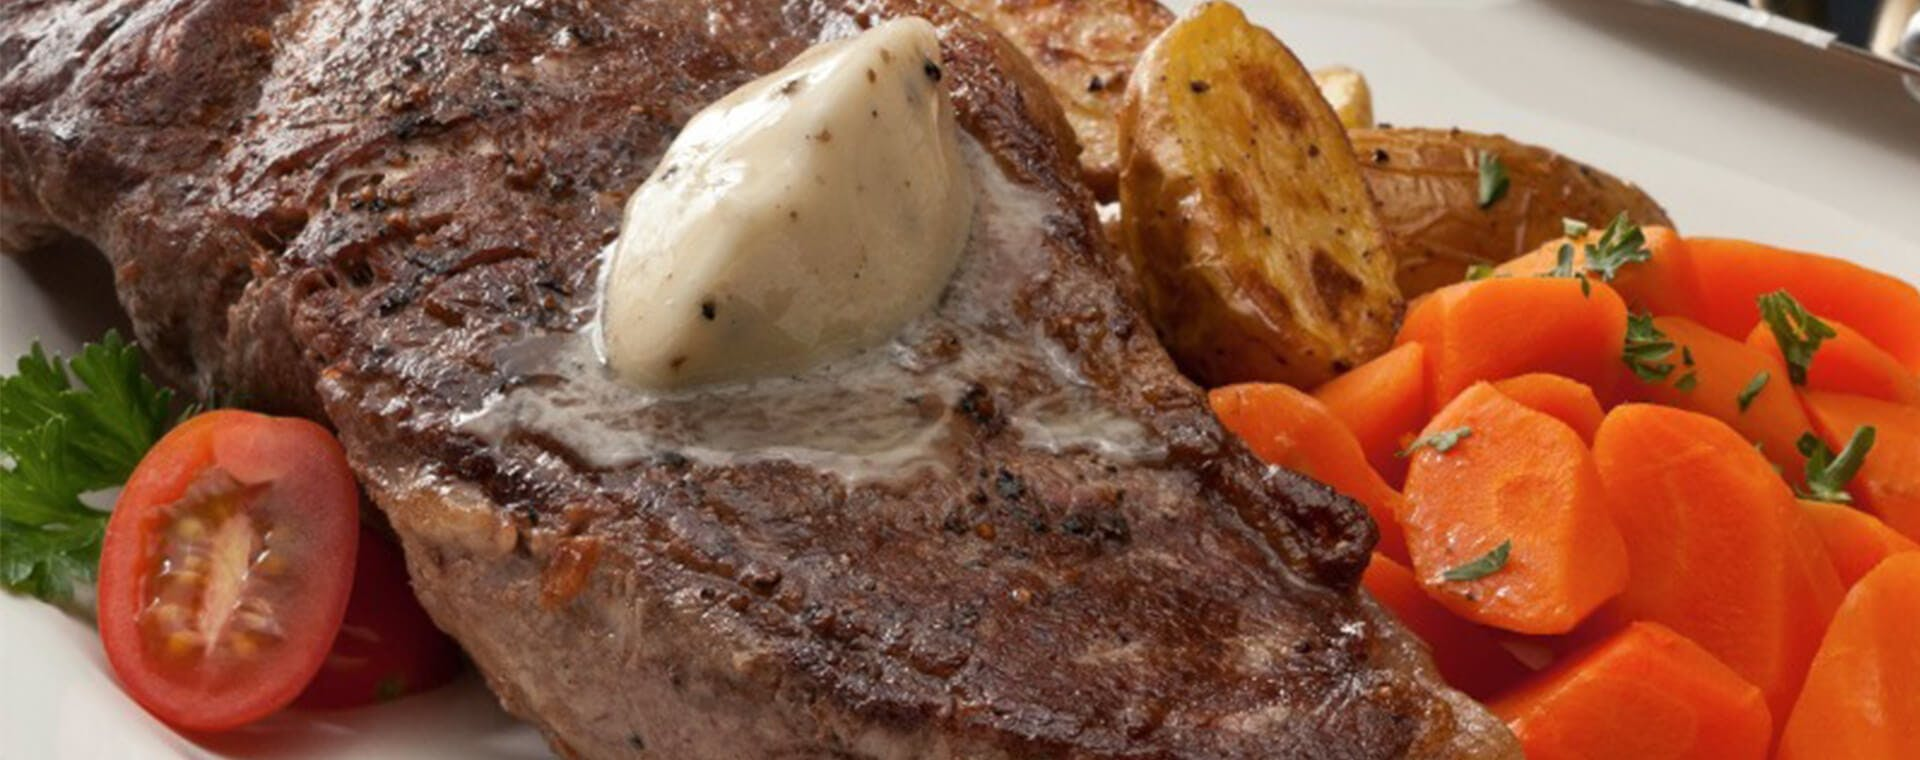 Grilled Steak with Black Truffle Butter melted on top